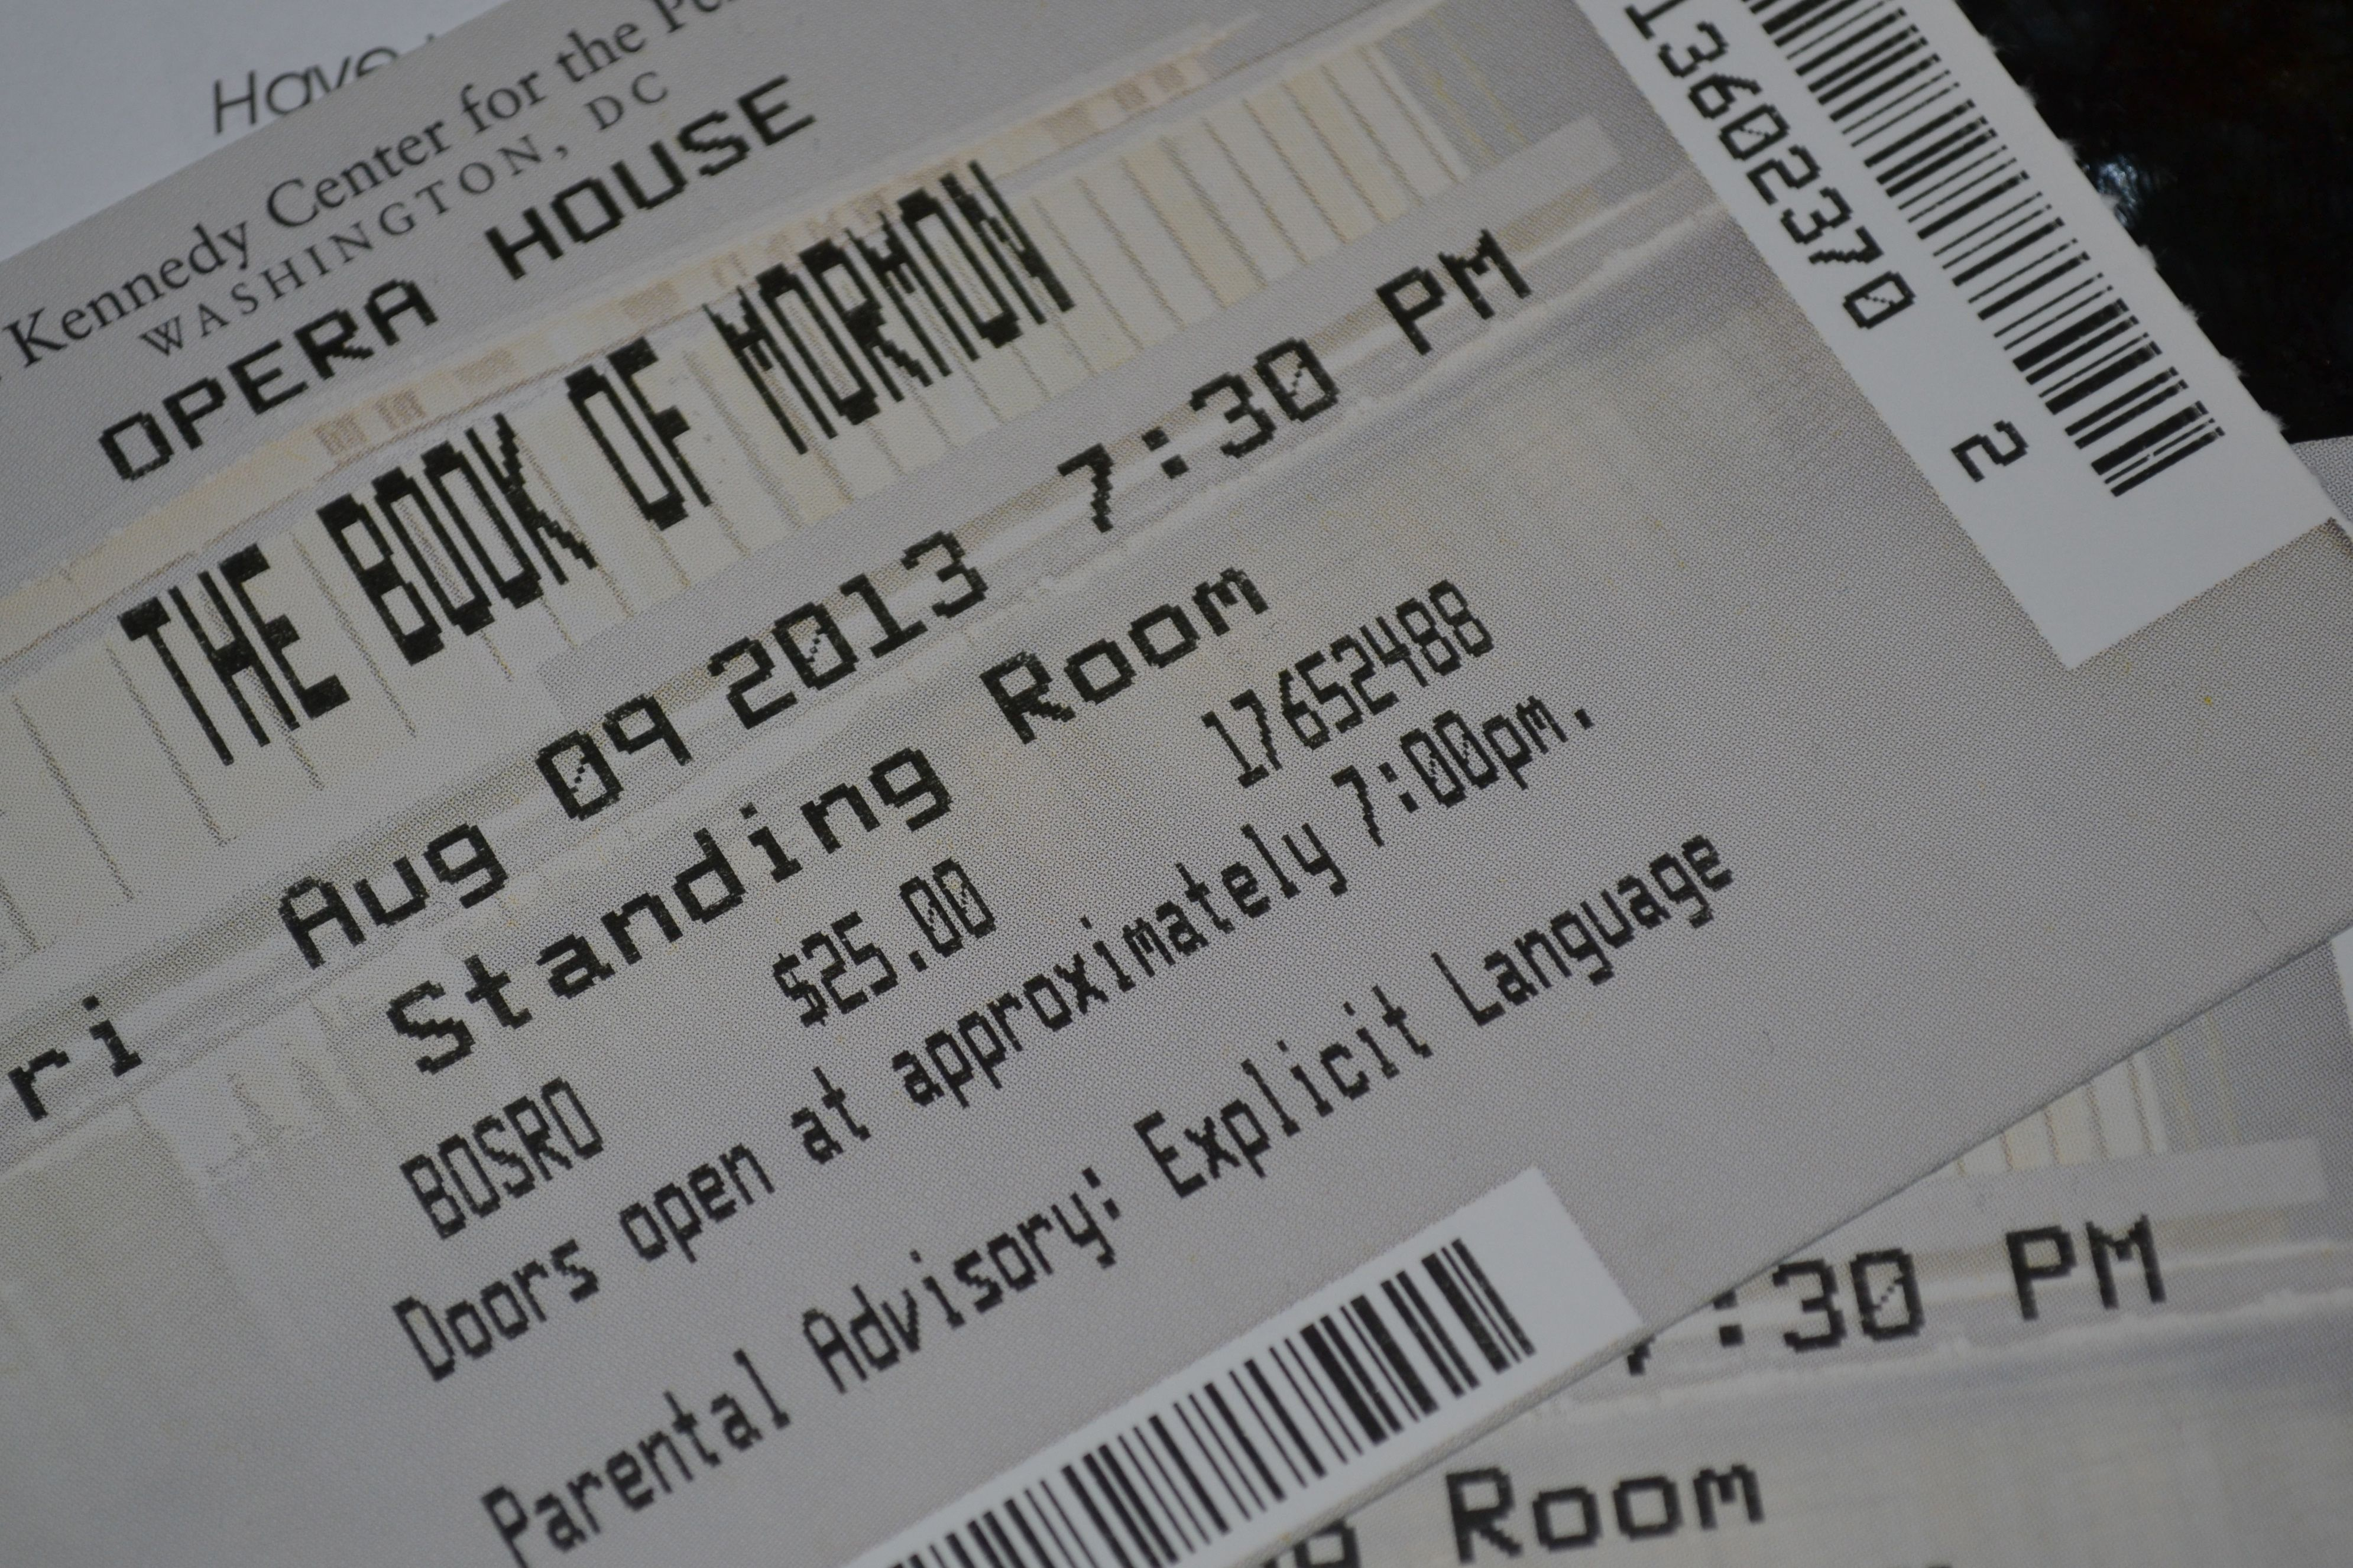 Getting tickets for the hottest show in dc the book of mormon 2girlsindc - The book of mormon box office ...